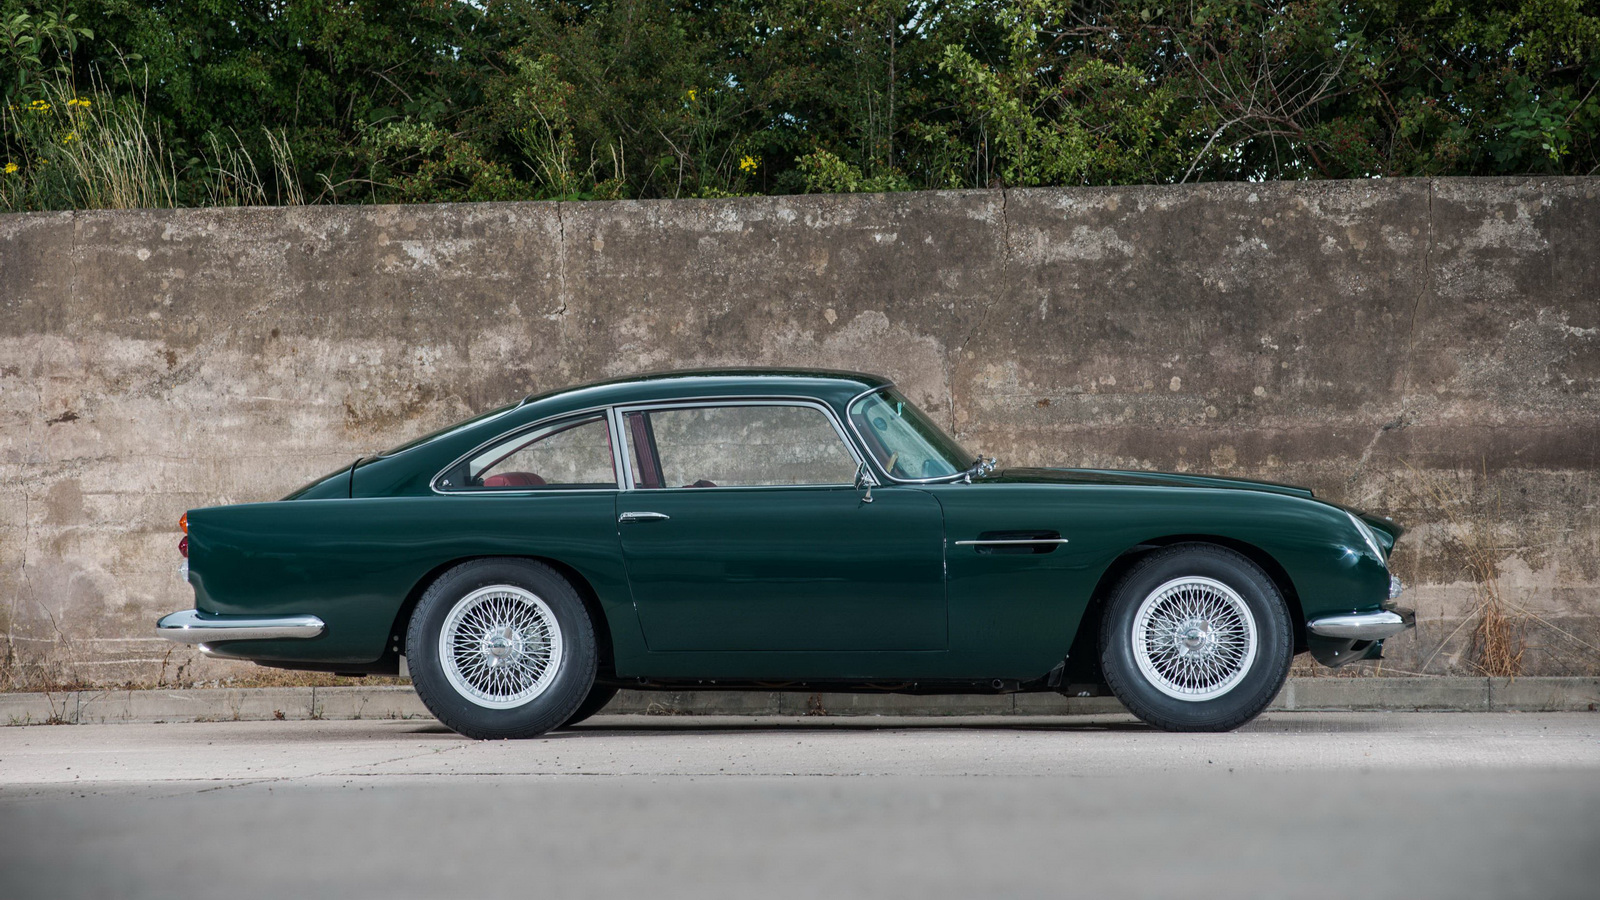 aston martin db4 series v vantage review - top speed